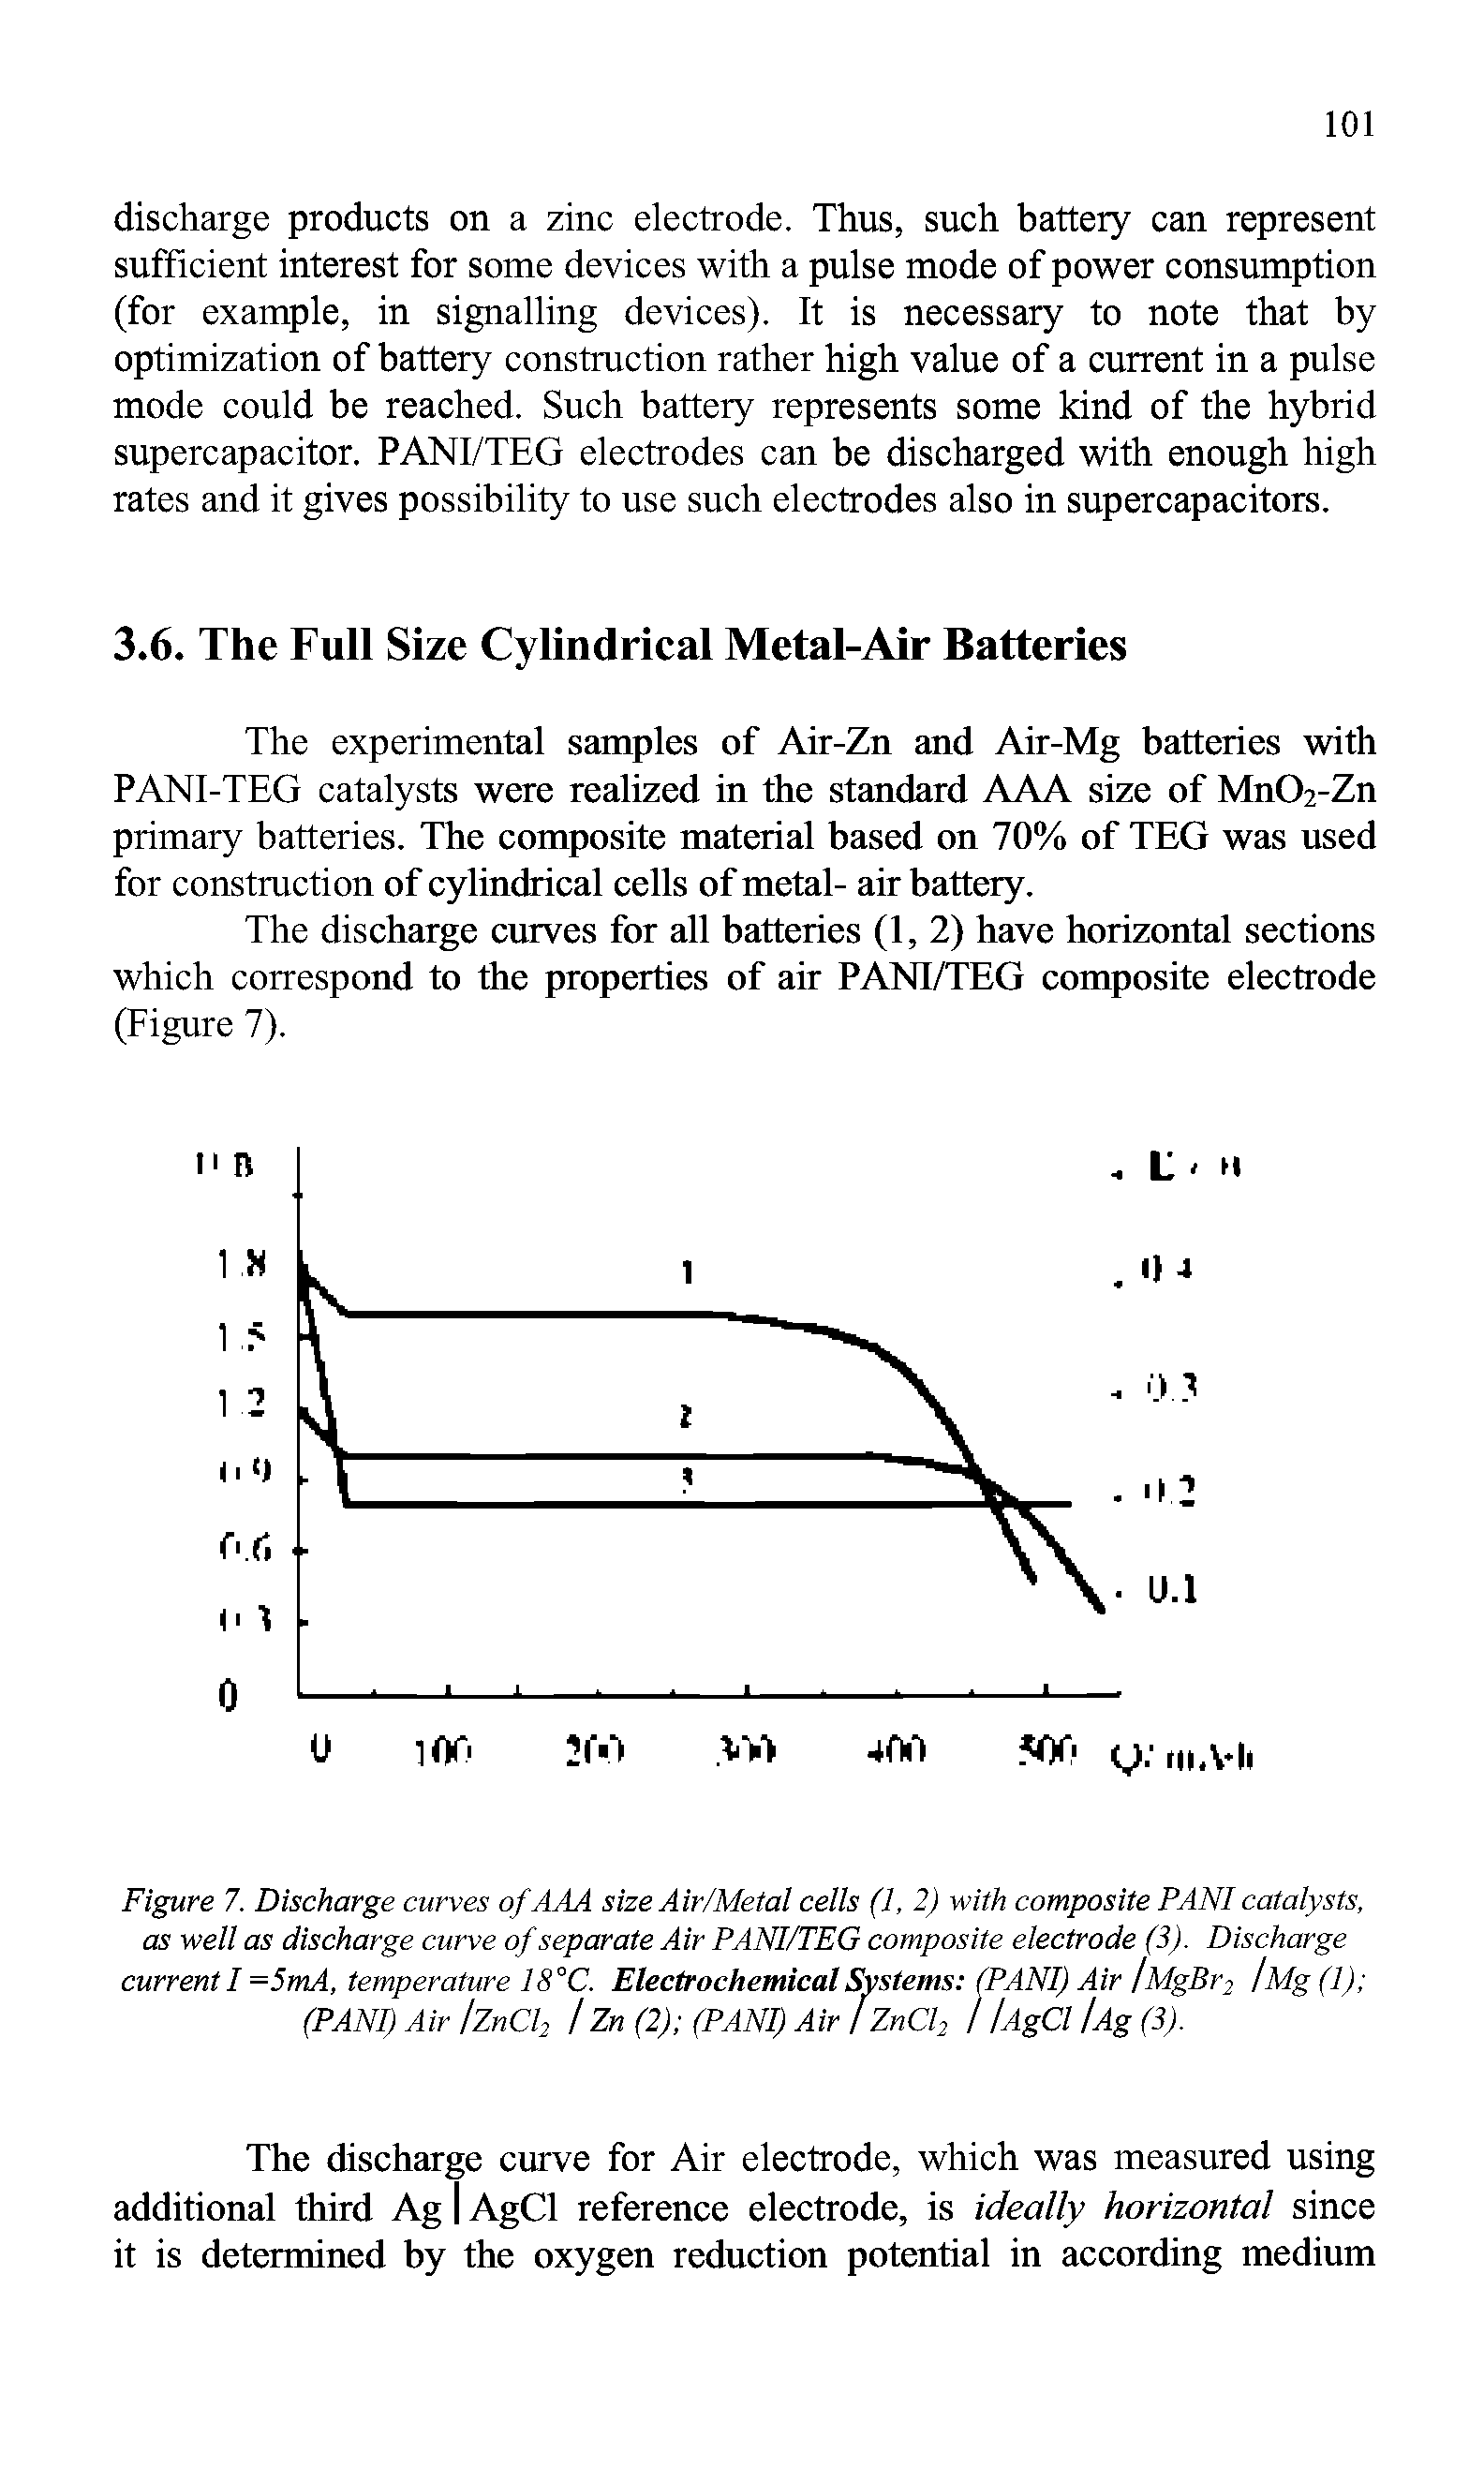 Figure 7. Discharge curves of AAA size Air/Metal cells (1, 2) with composite PANI catalysts, as well as discharge curve of separate Air PANI/TEG composite electrode (3). Discharge current I =5mA, temperature 18°C. Electrochemical Systems (PANI) Air /MgBr2 I Mg (1) (PANI) Air IZnCl2 /Zn (2) (PANI) Air / ZnCl2 1 UgCl Ug (3).